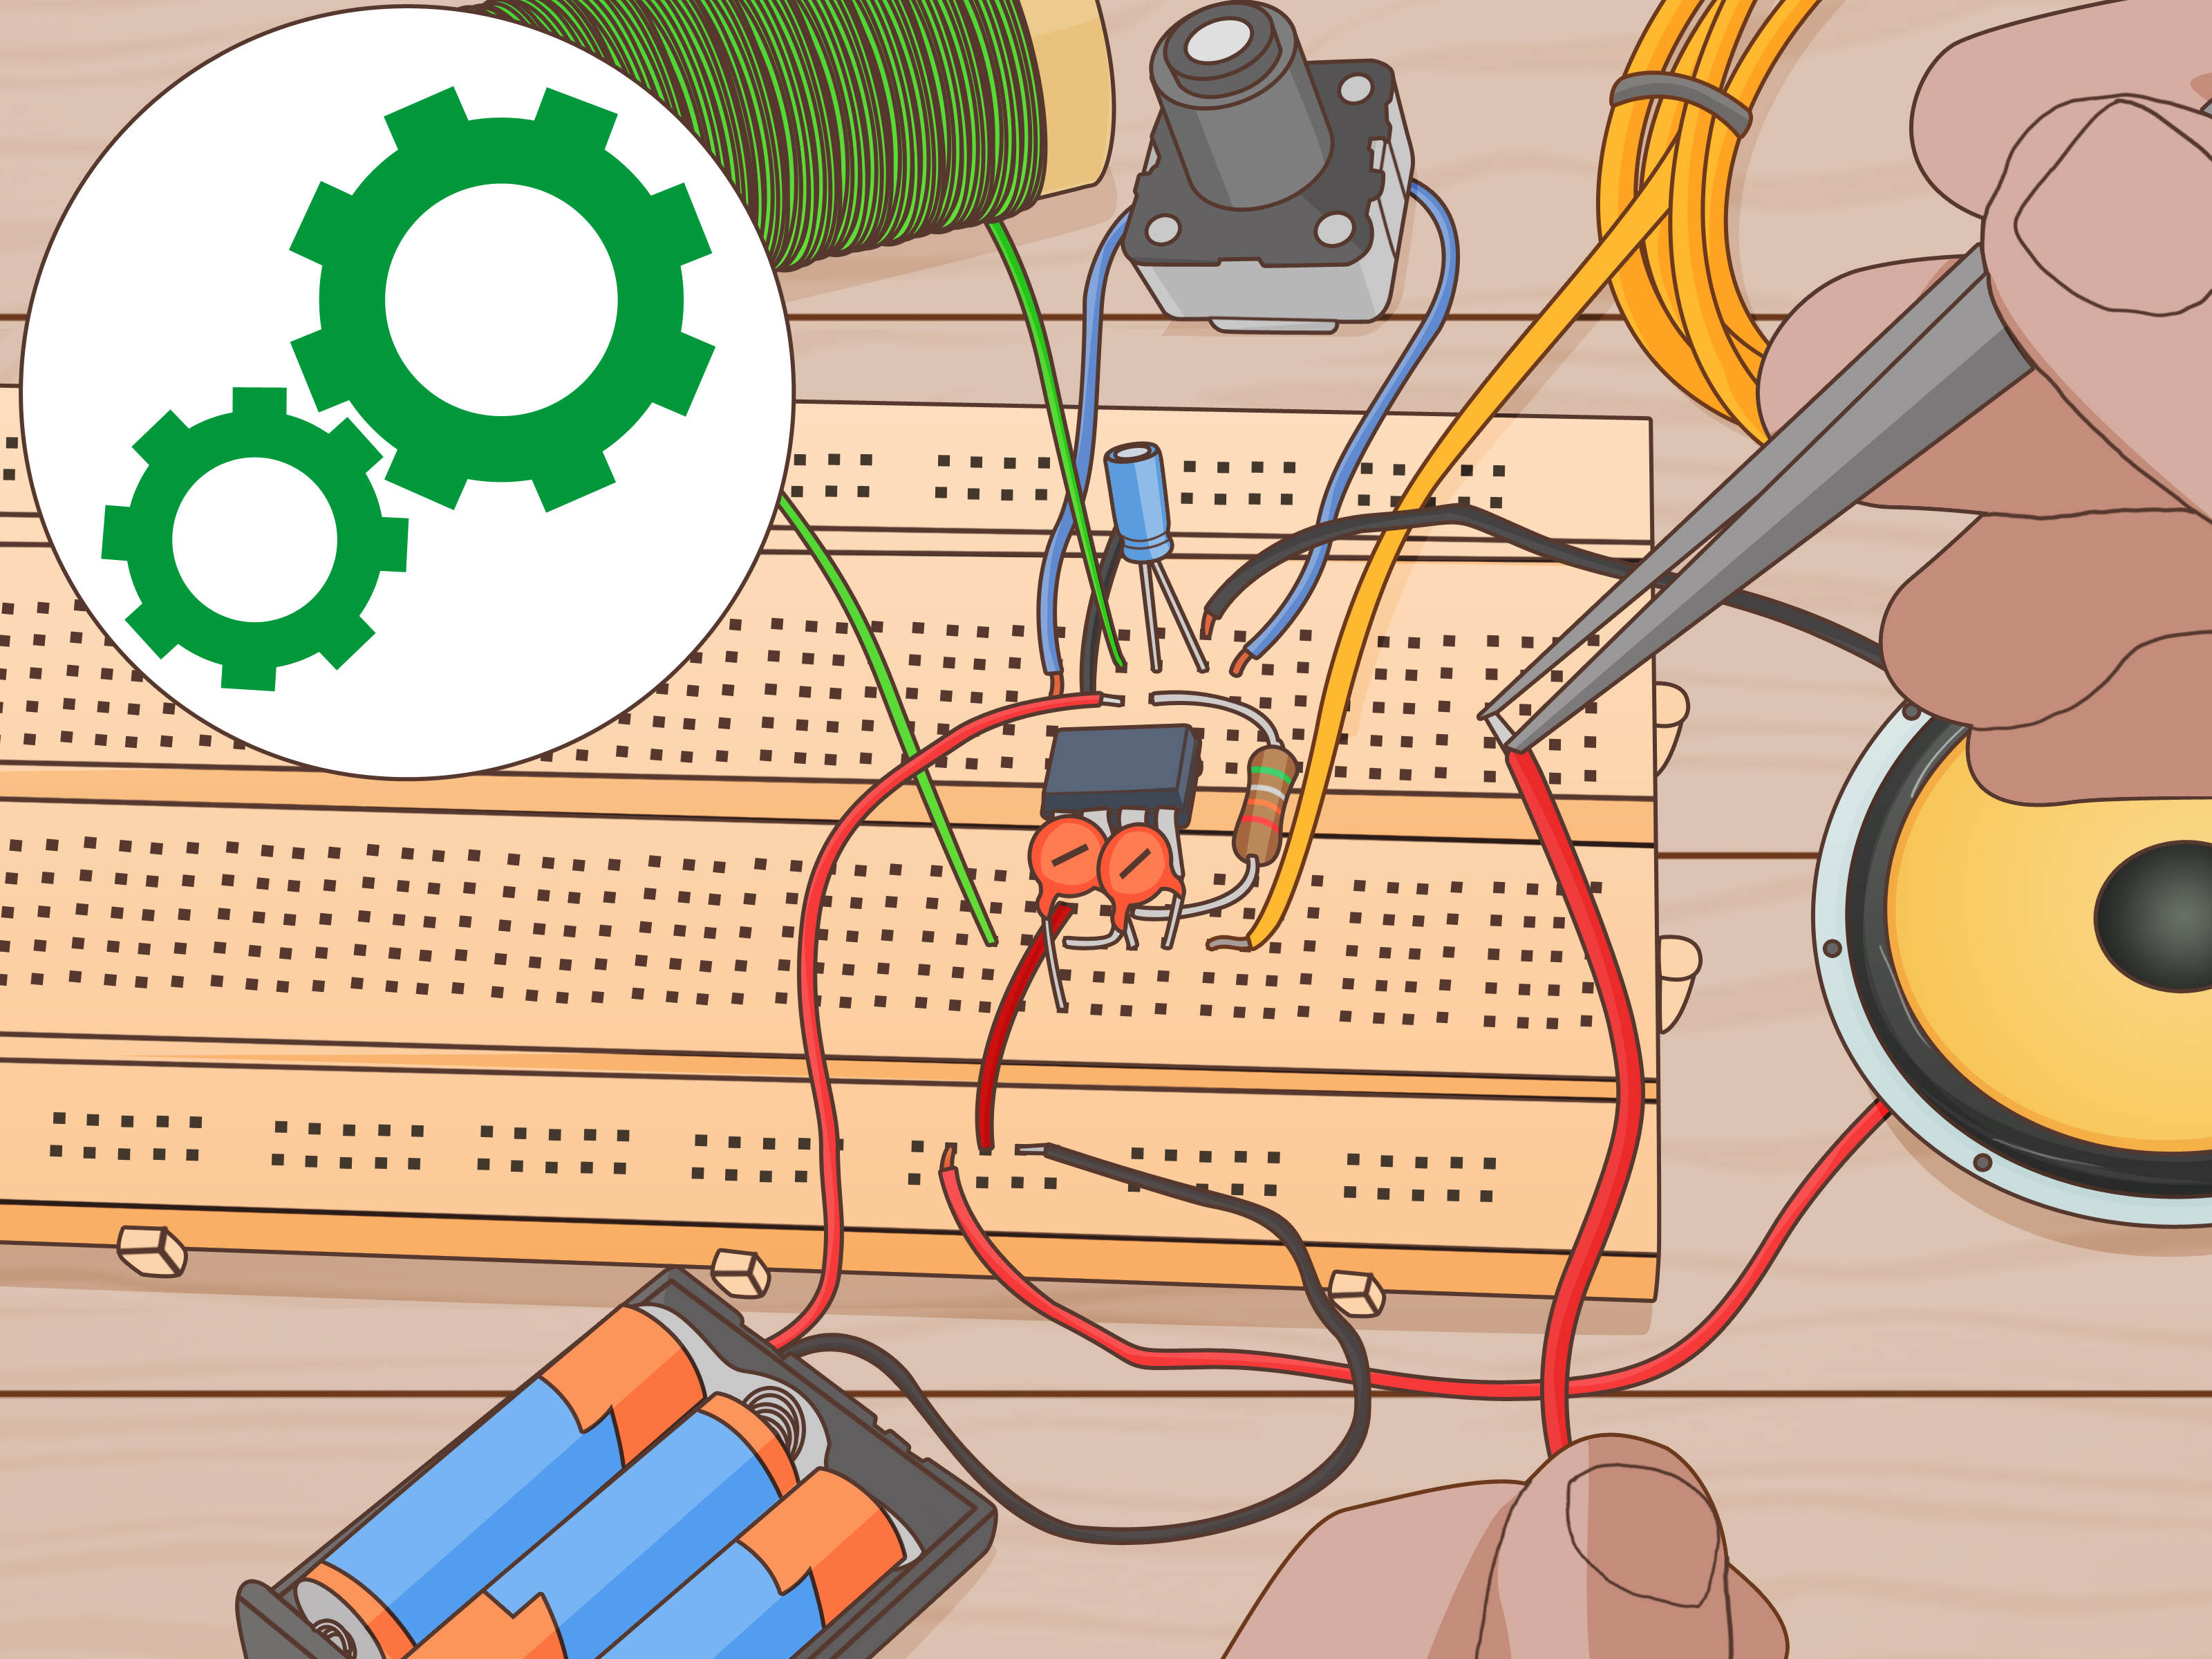 simple am receiver circuit diagram pioneer mosfet 50wx4 car stereo wiring how to create a radio wikihow